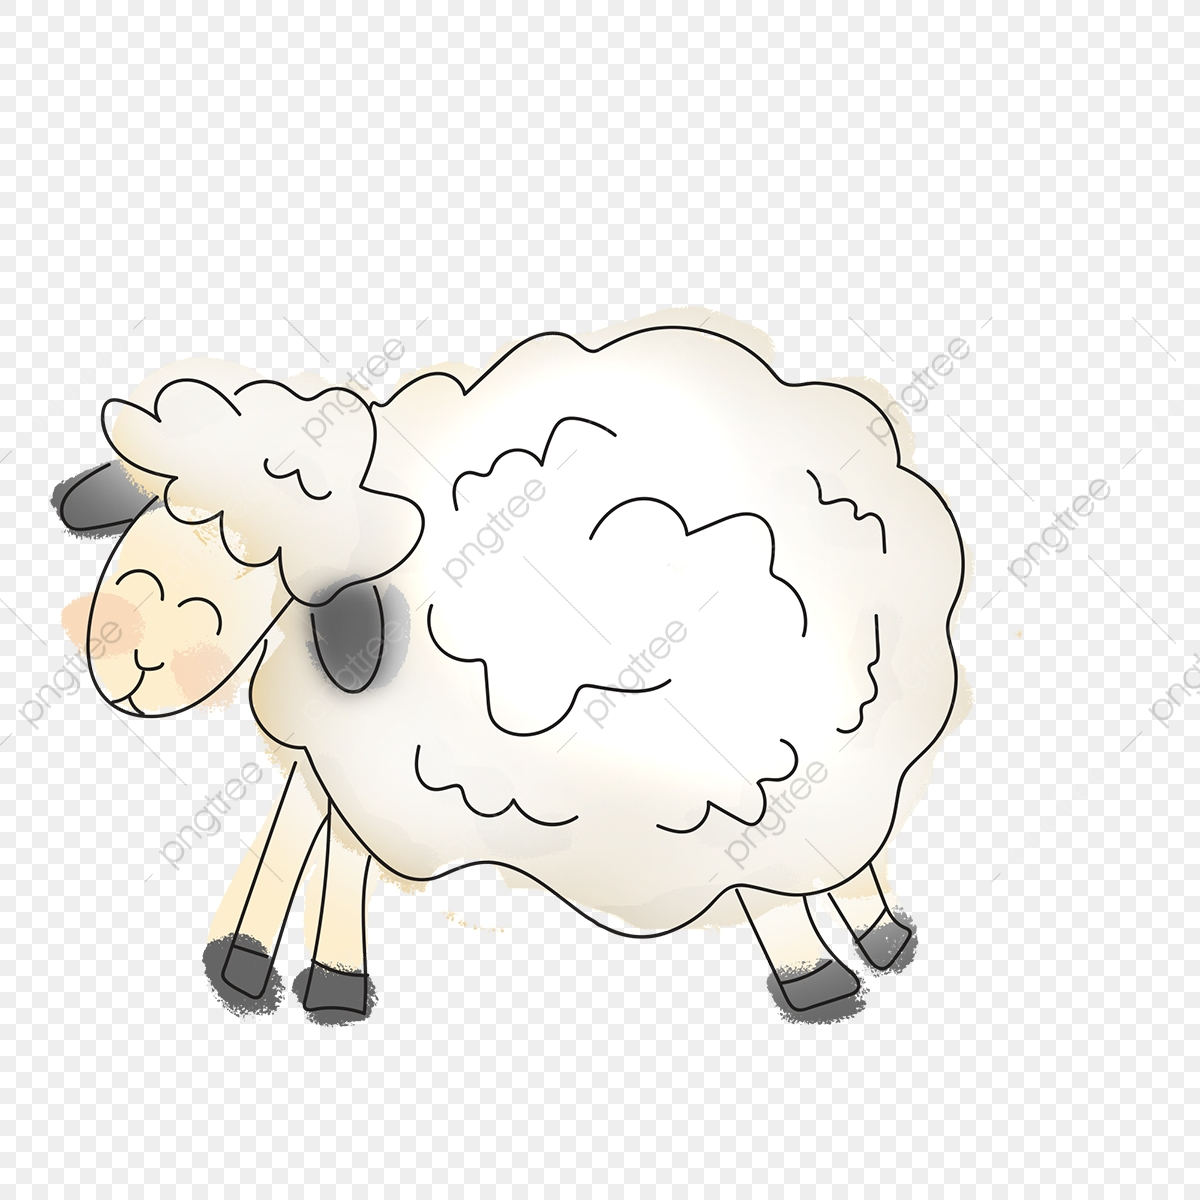 Sheep Clipart Png Images 400 Sheep Png Clip Art For Free